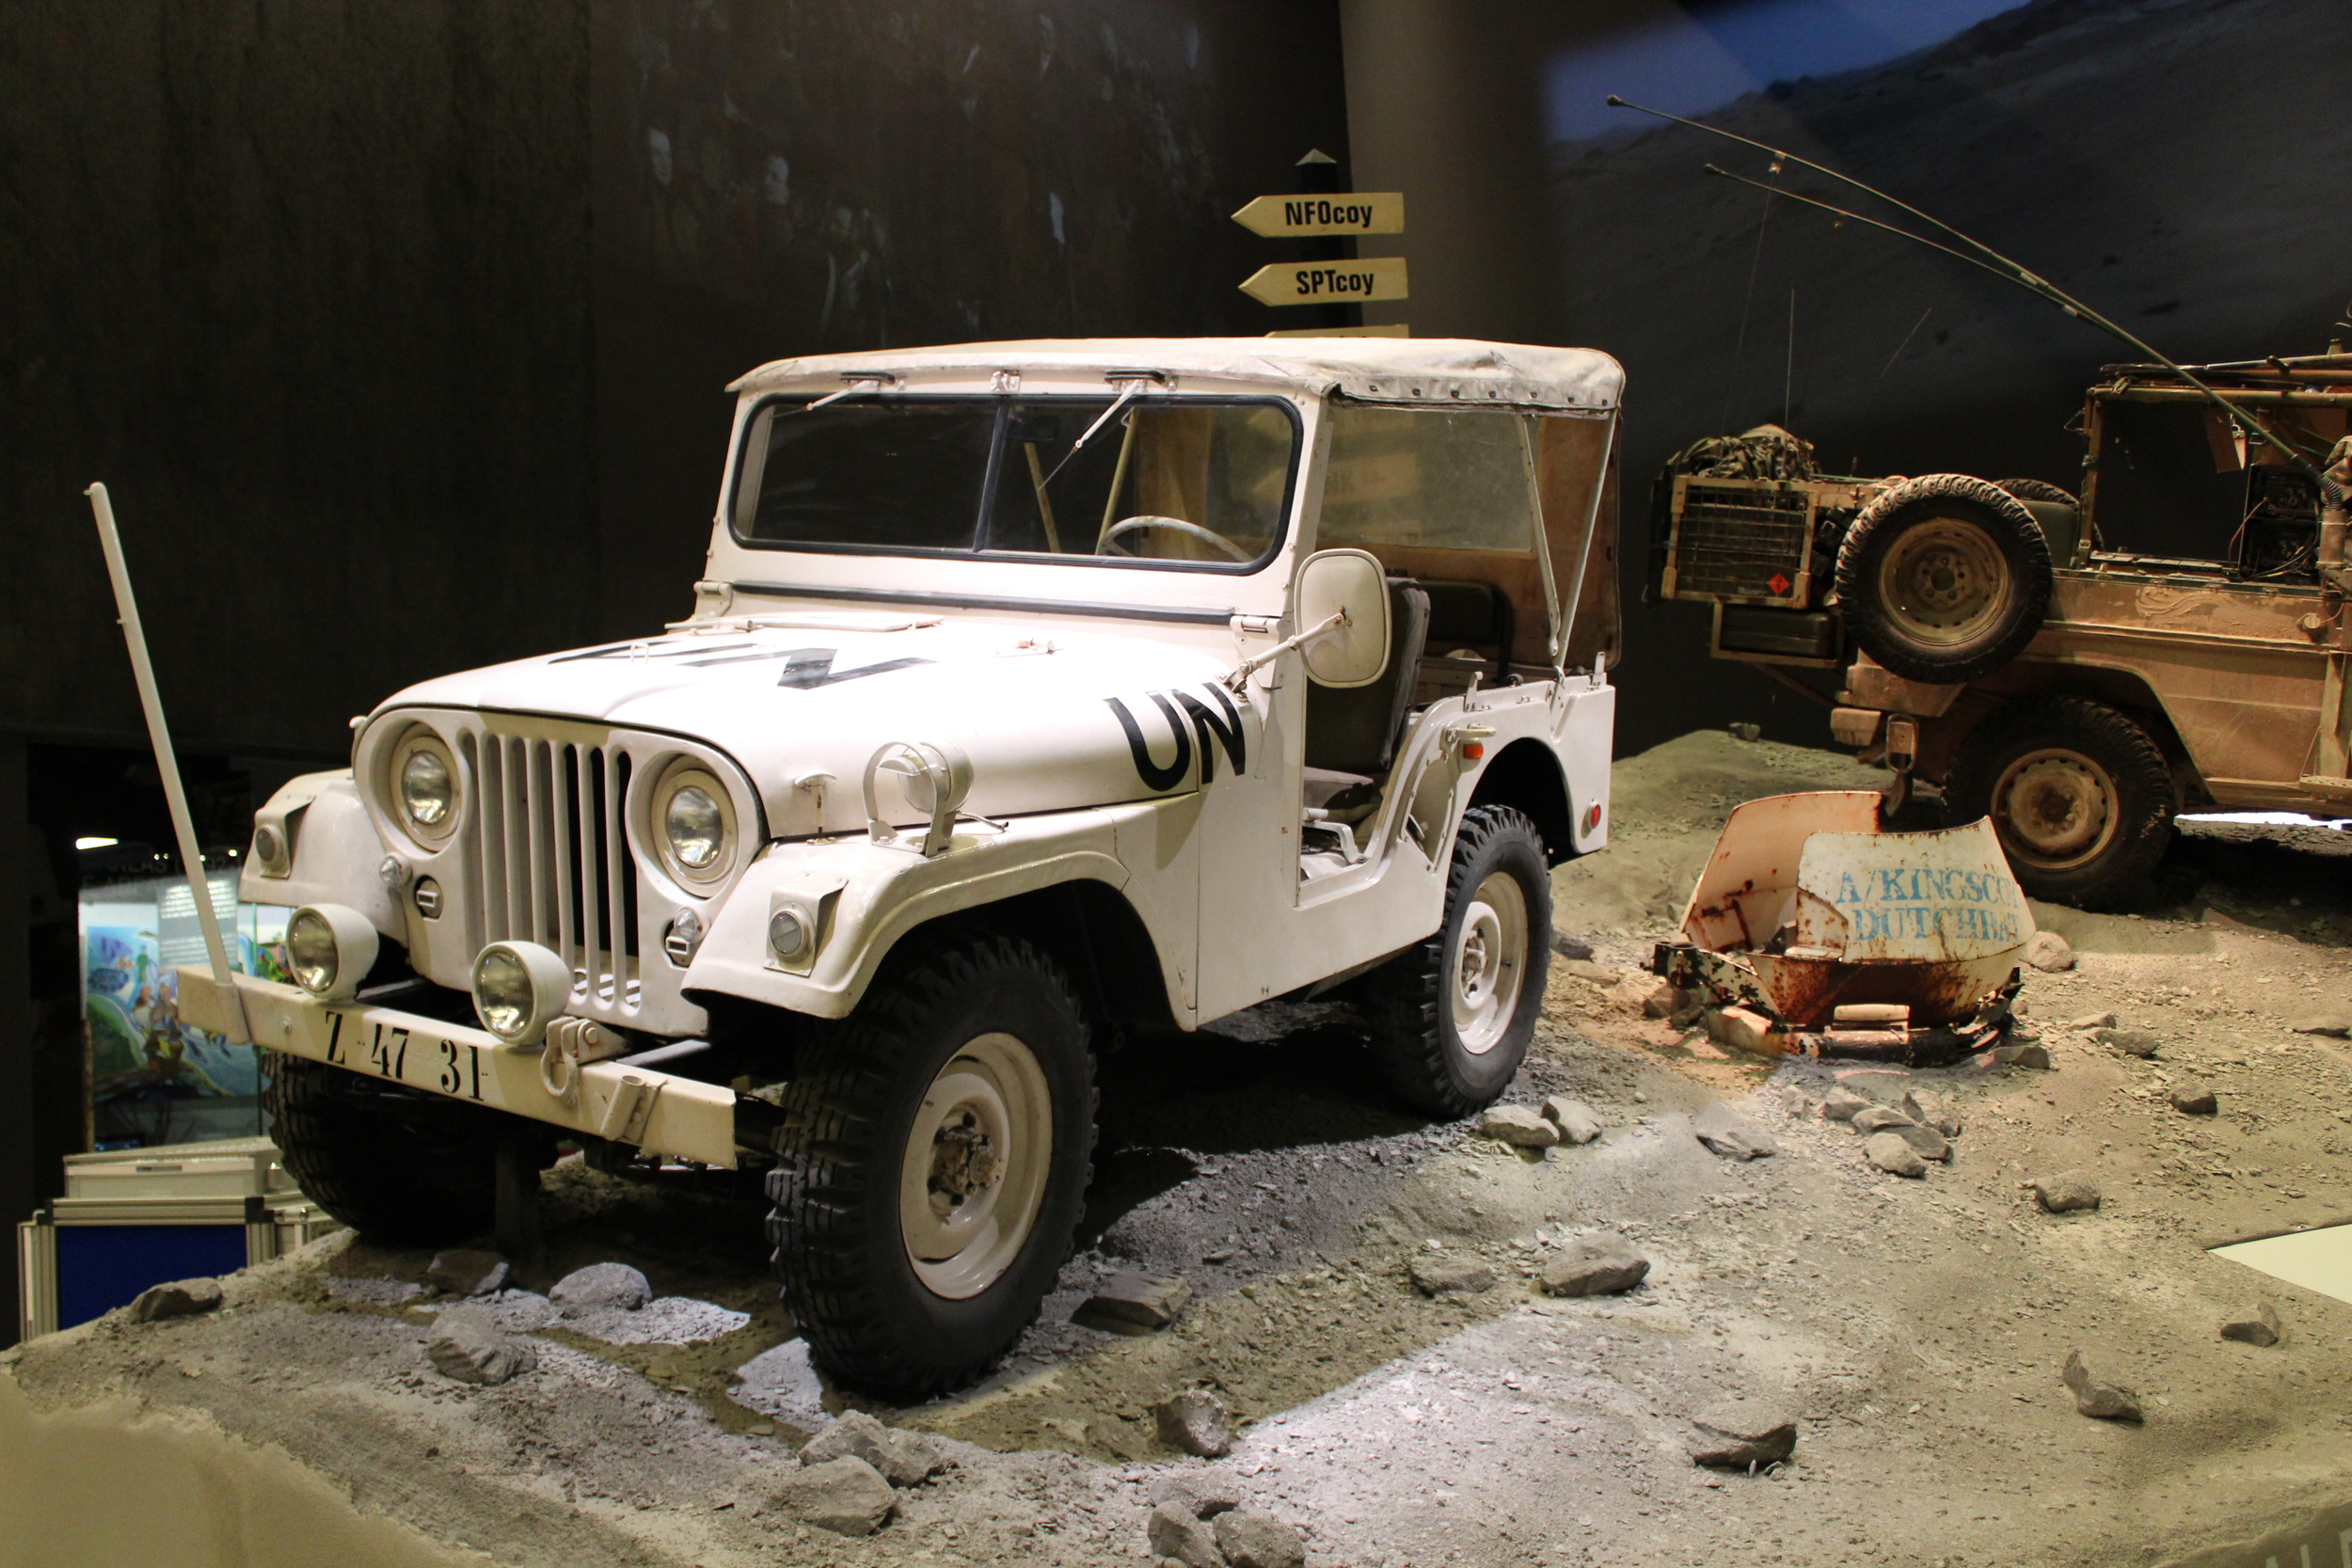 UNIFIL 'Nekaf' jeep